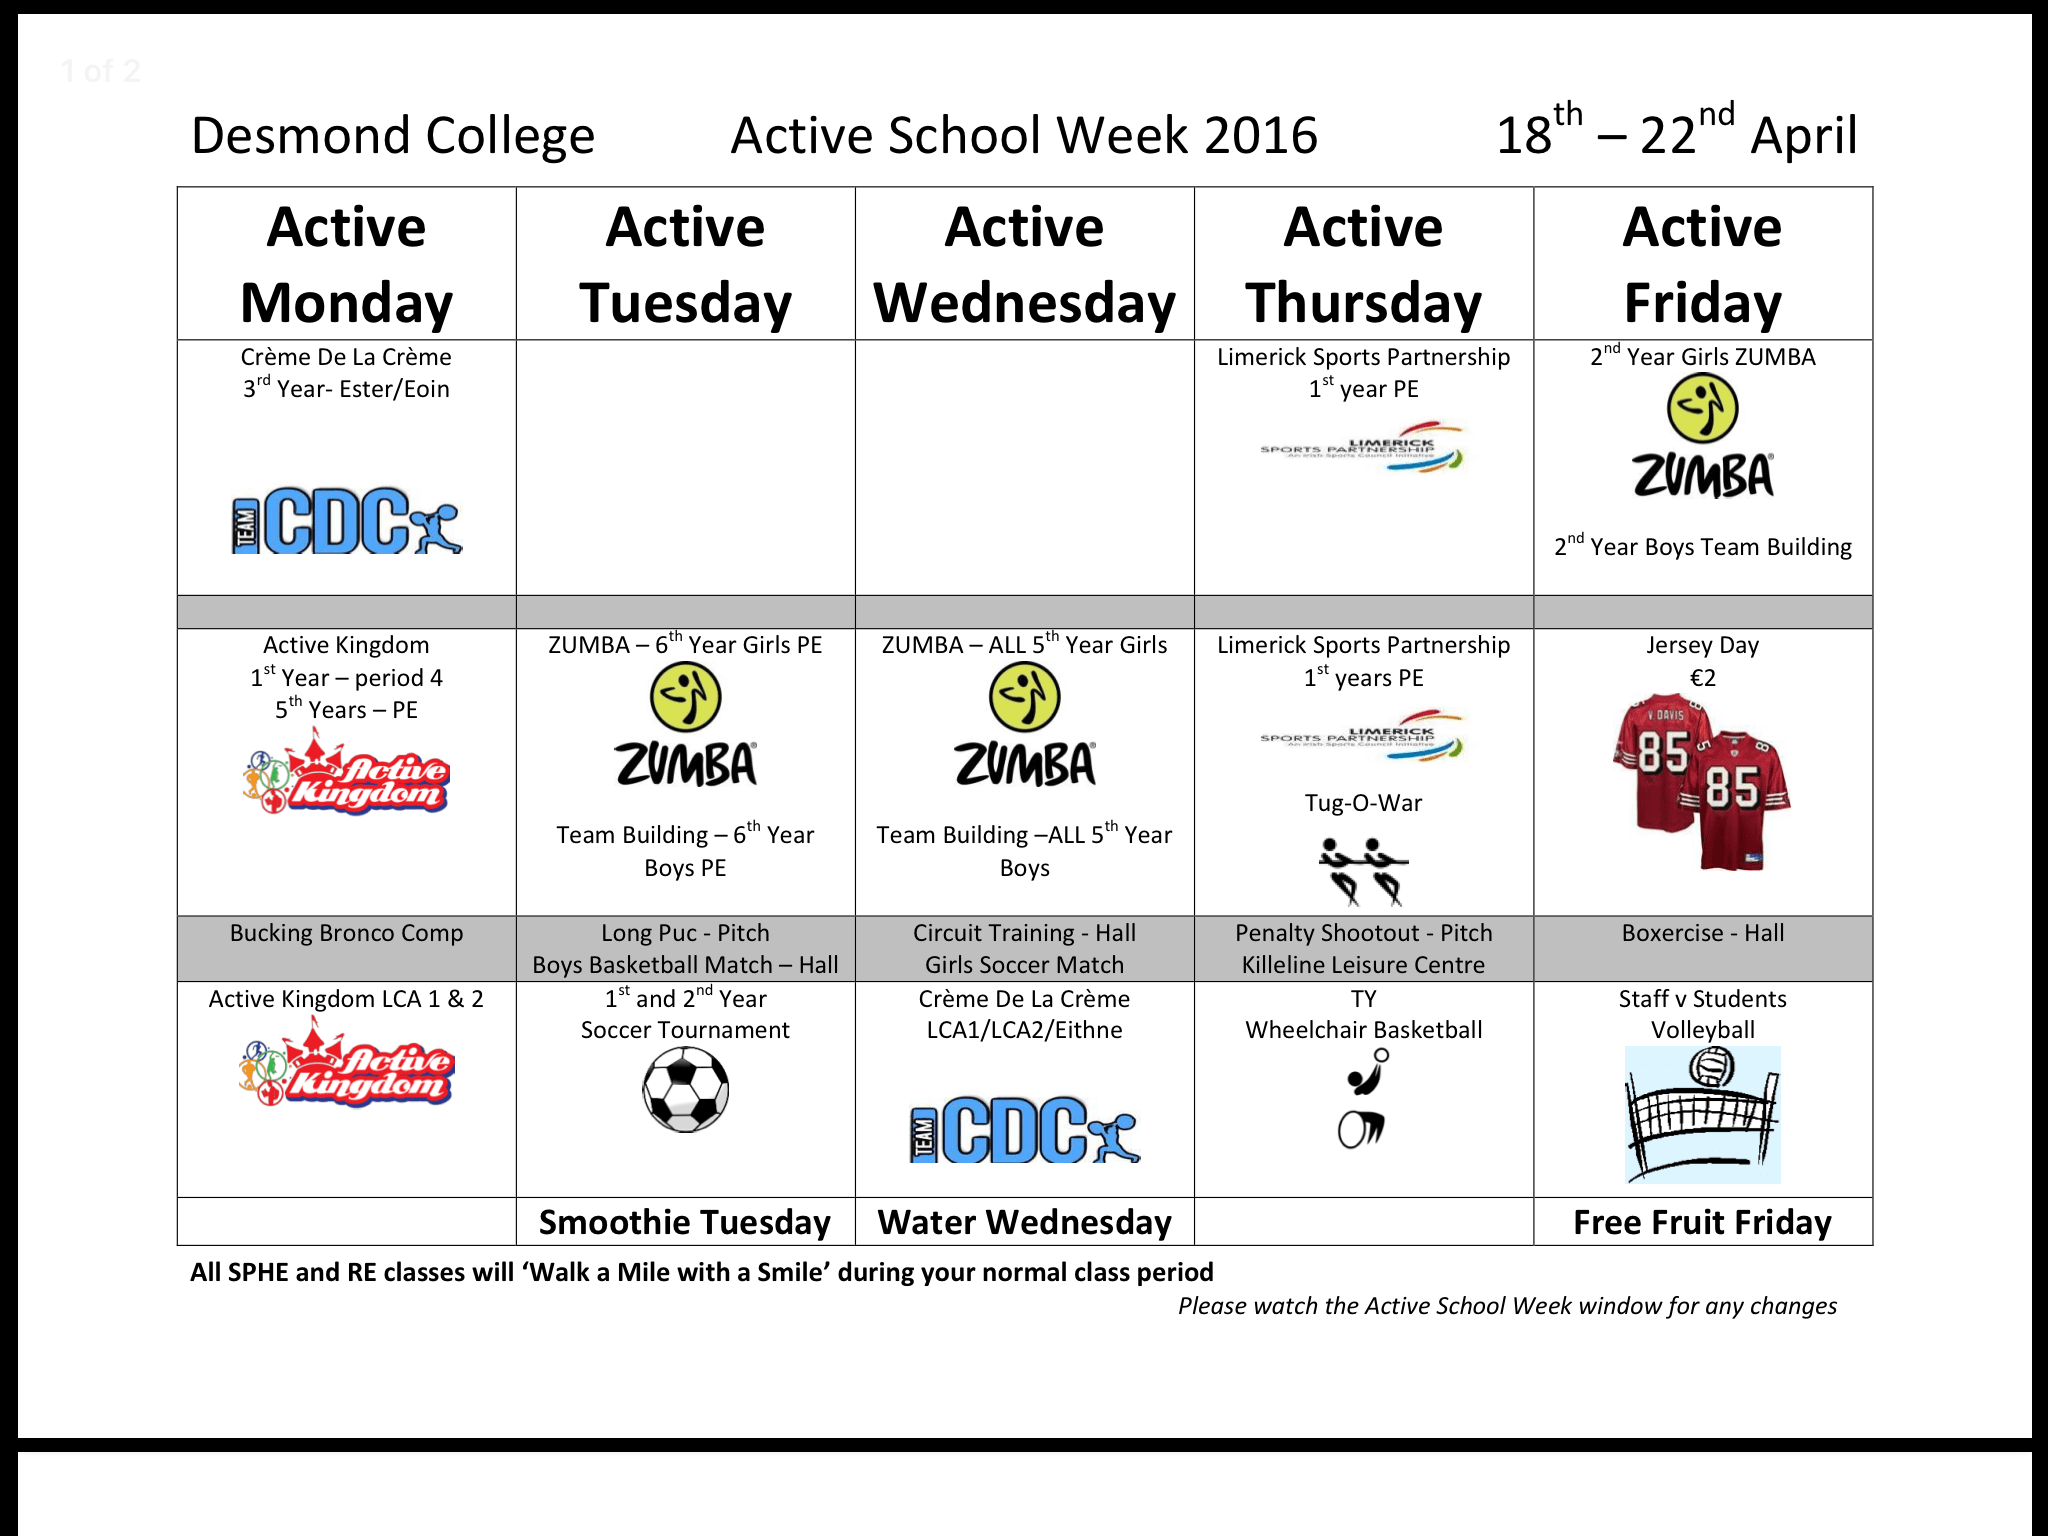 2016 April : desmond College active schools week from Monday 18th April to Friday 22nd April